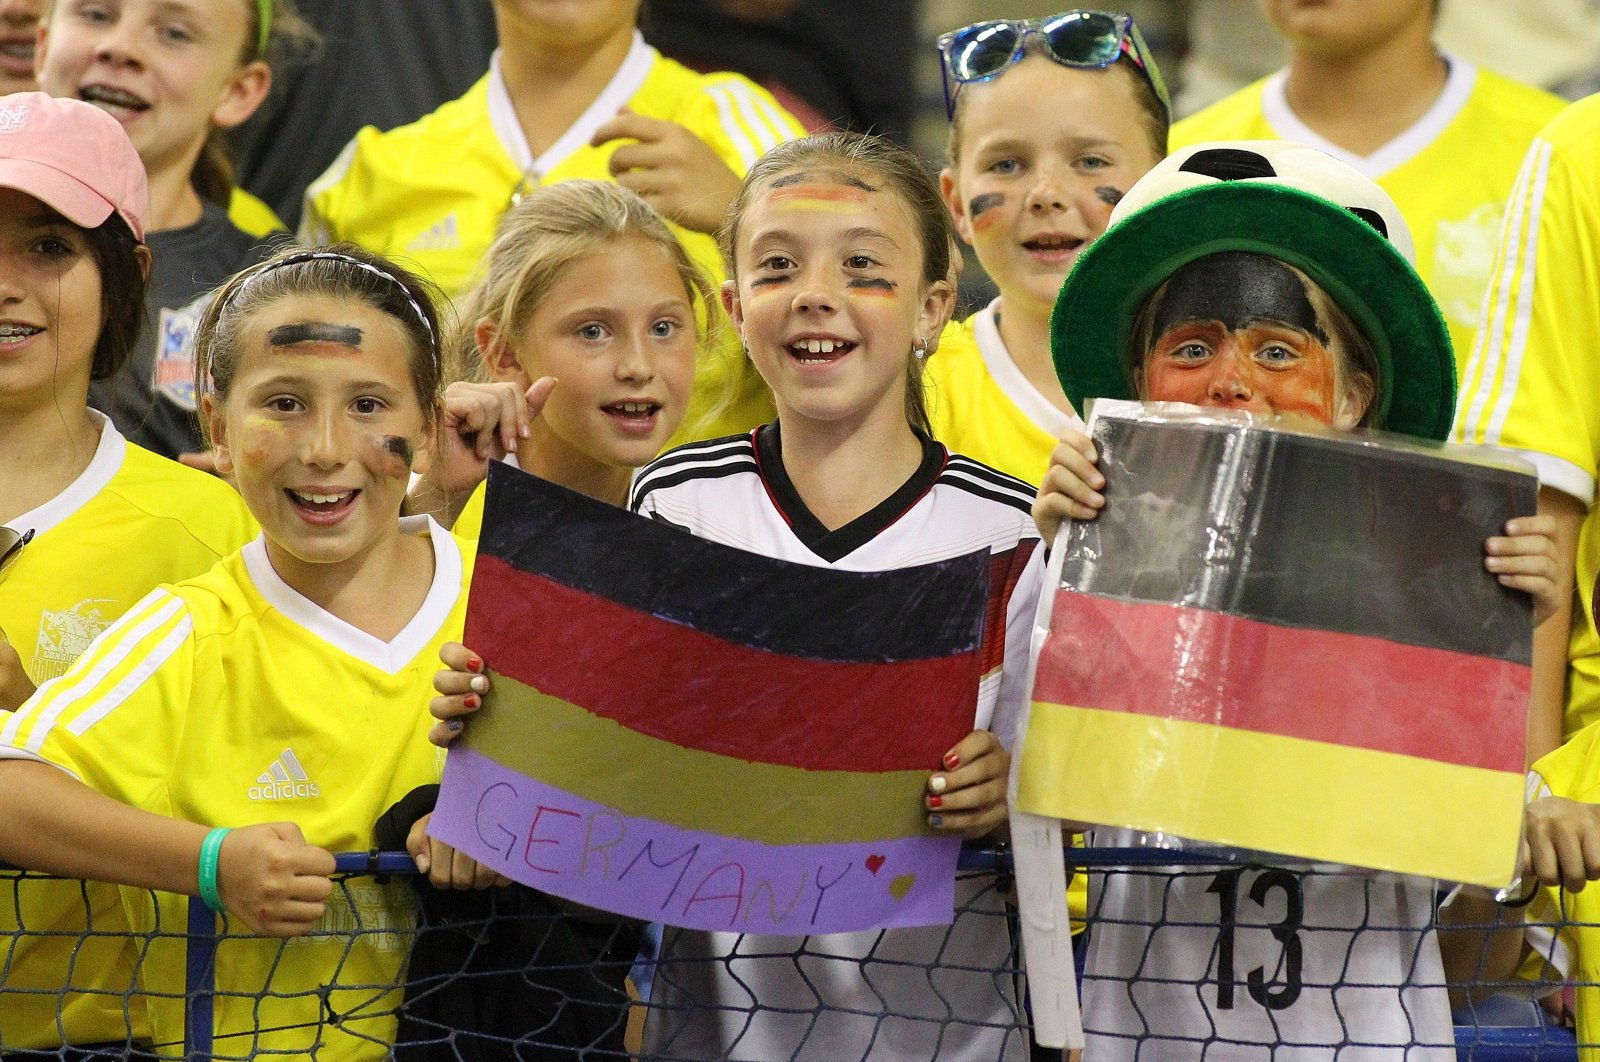 Kids cheering for team Germany during the FIFA Women's World Cup Canada 2015 quarterfinal match between Germany and France at Olympic Stadium in Montreal, Canada, on June 26, 2015. (Getty Images)